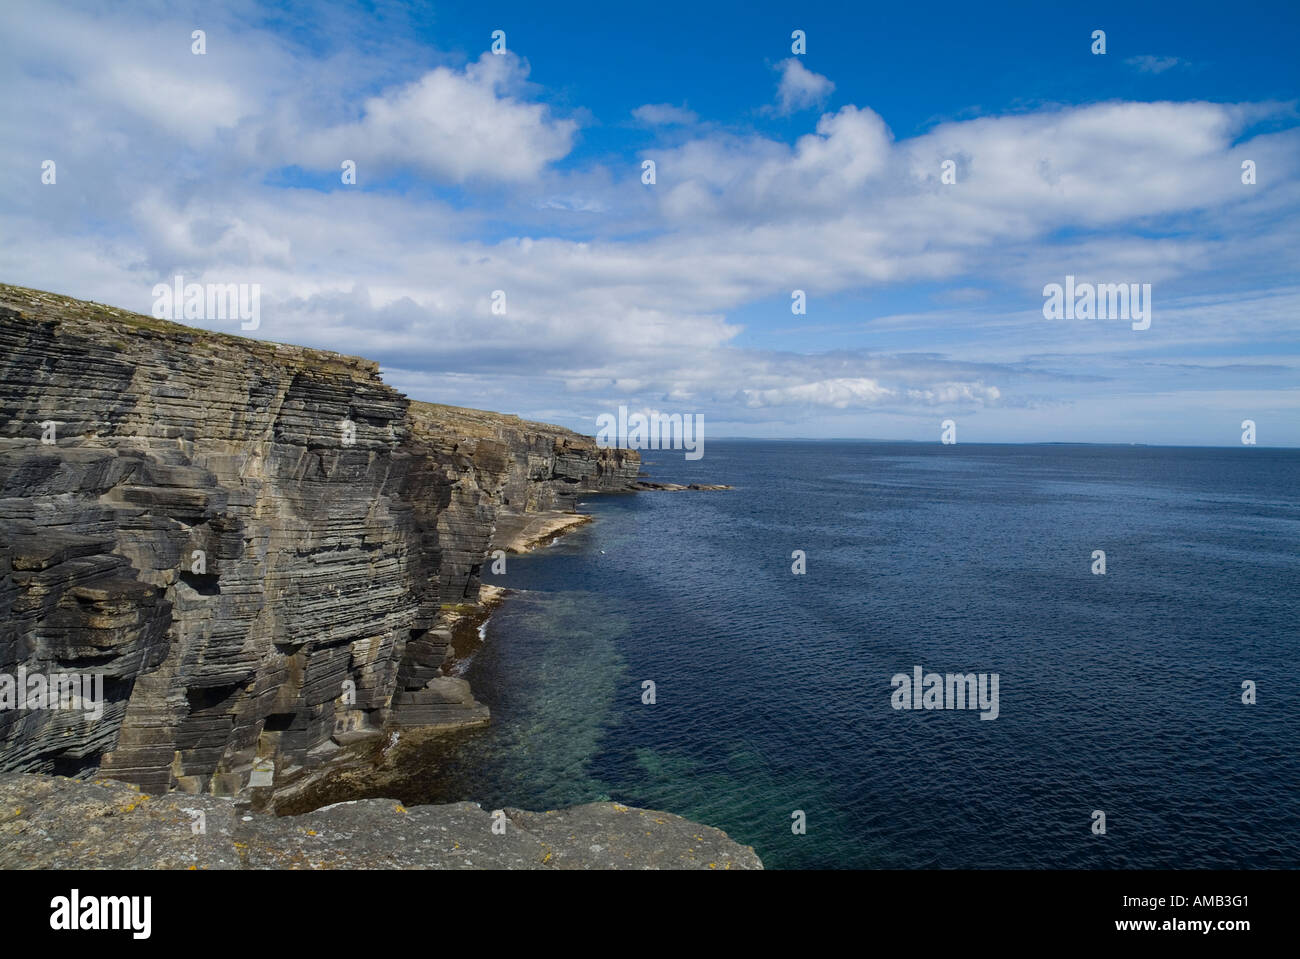 dh Clu Ber DEERNESS ORKNEY East coast seacliffs calm blue sea and sky rugged coastline summer Stock Photo